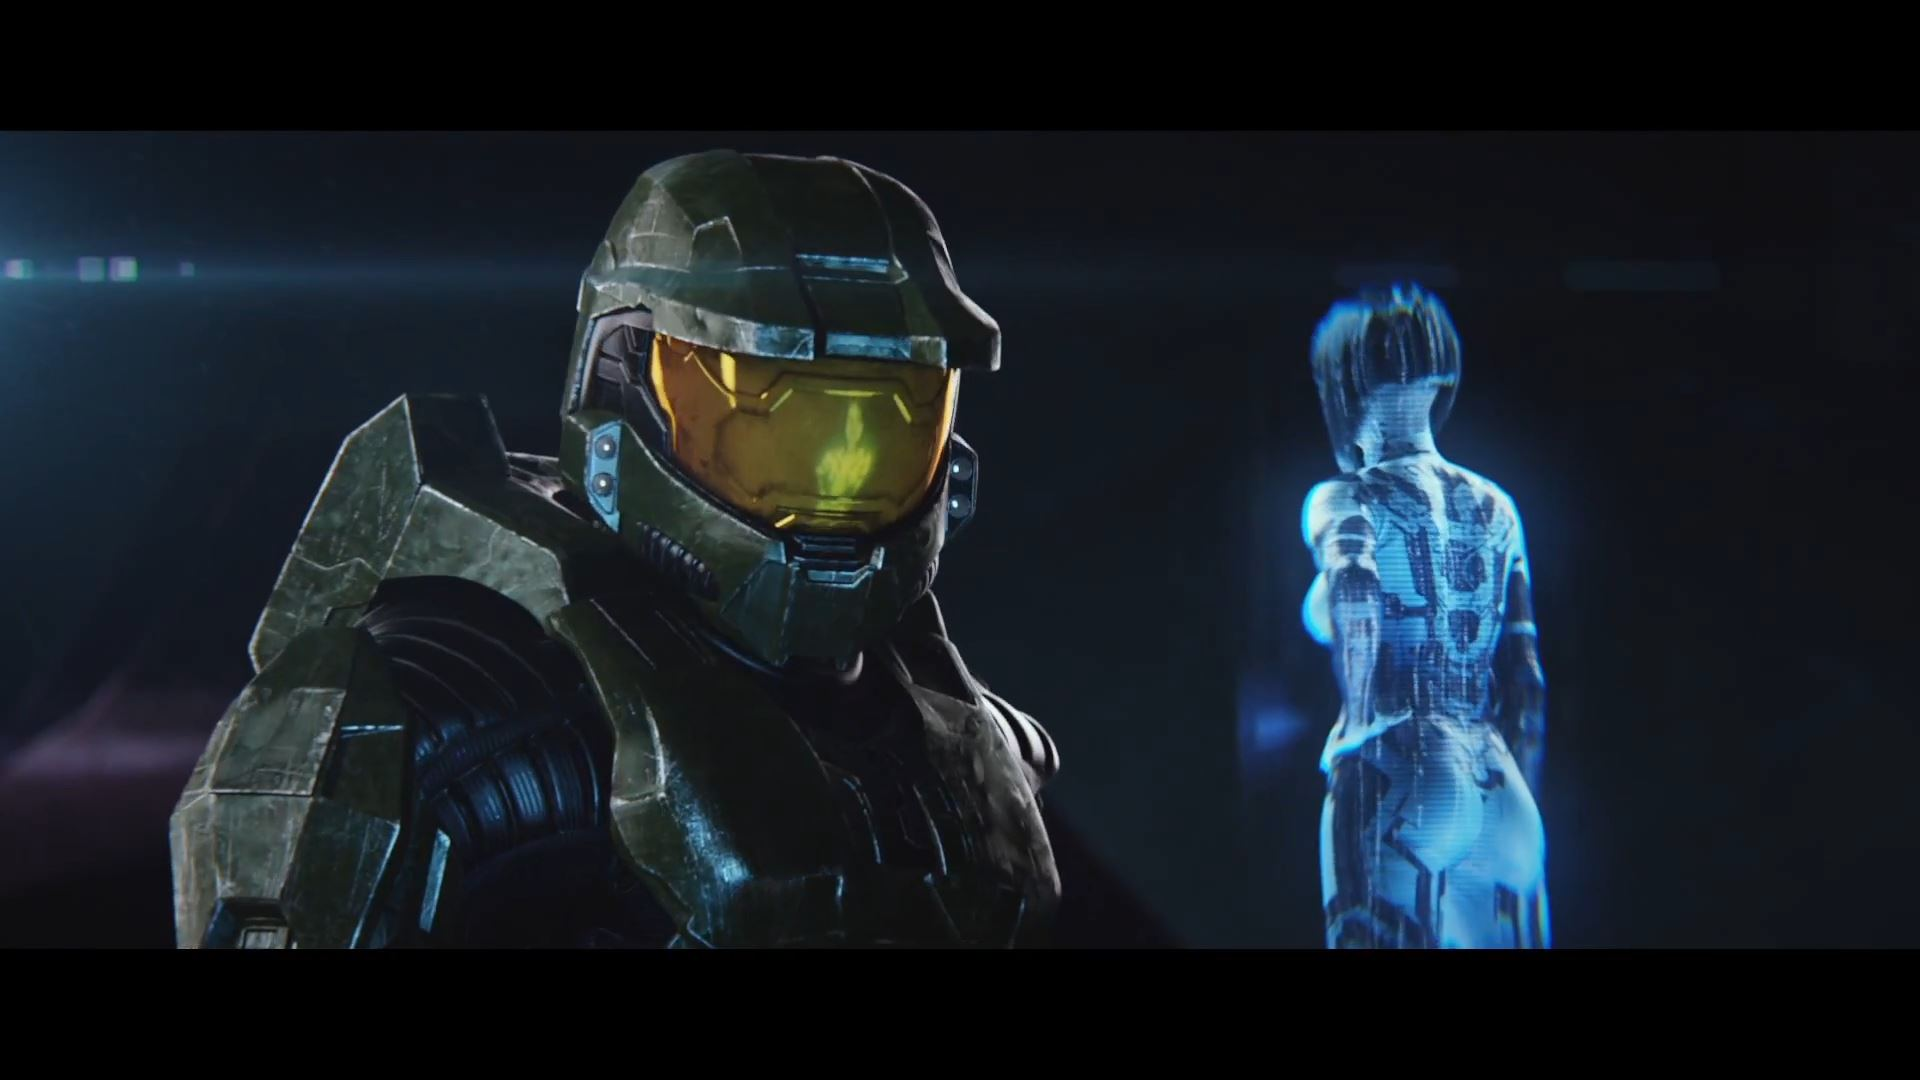 No Halo for E3 2017